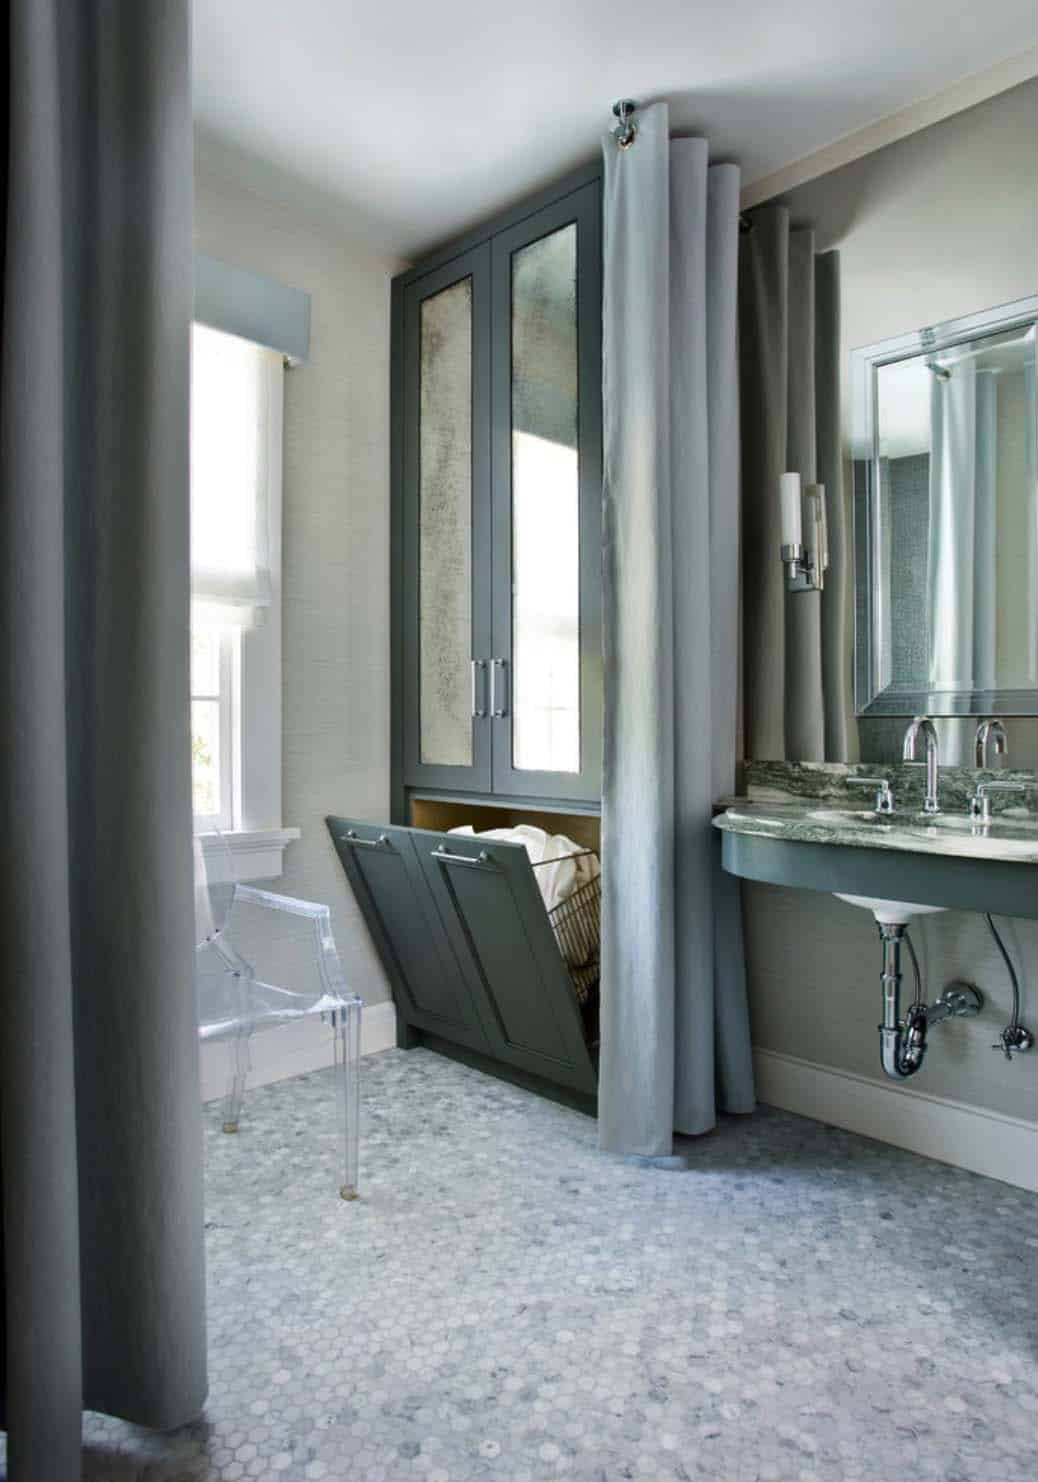 53 Most fabulous traditional style bathroom designs ever on Bathroom Remodel Design Ideas  id=97152